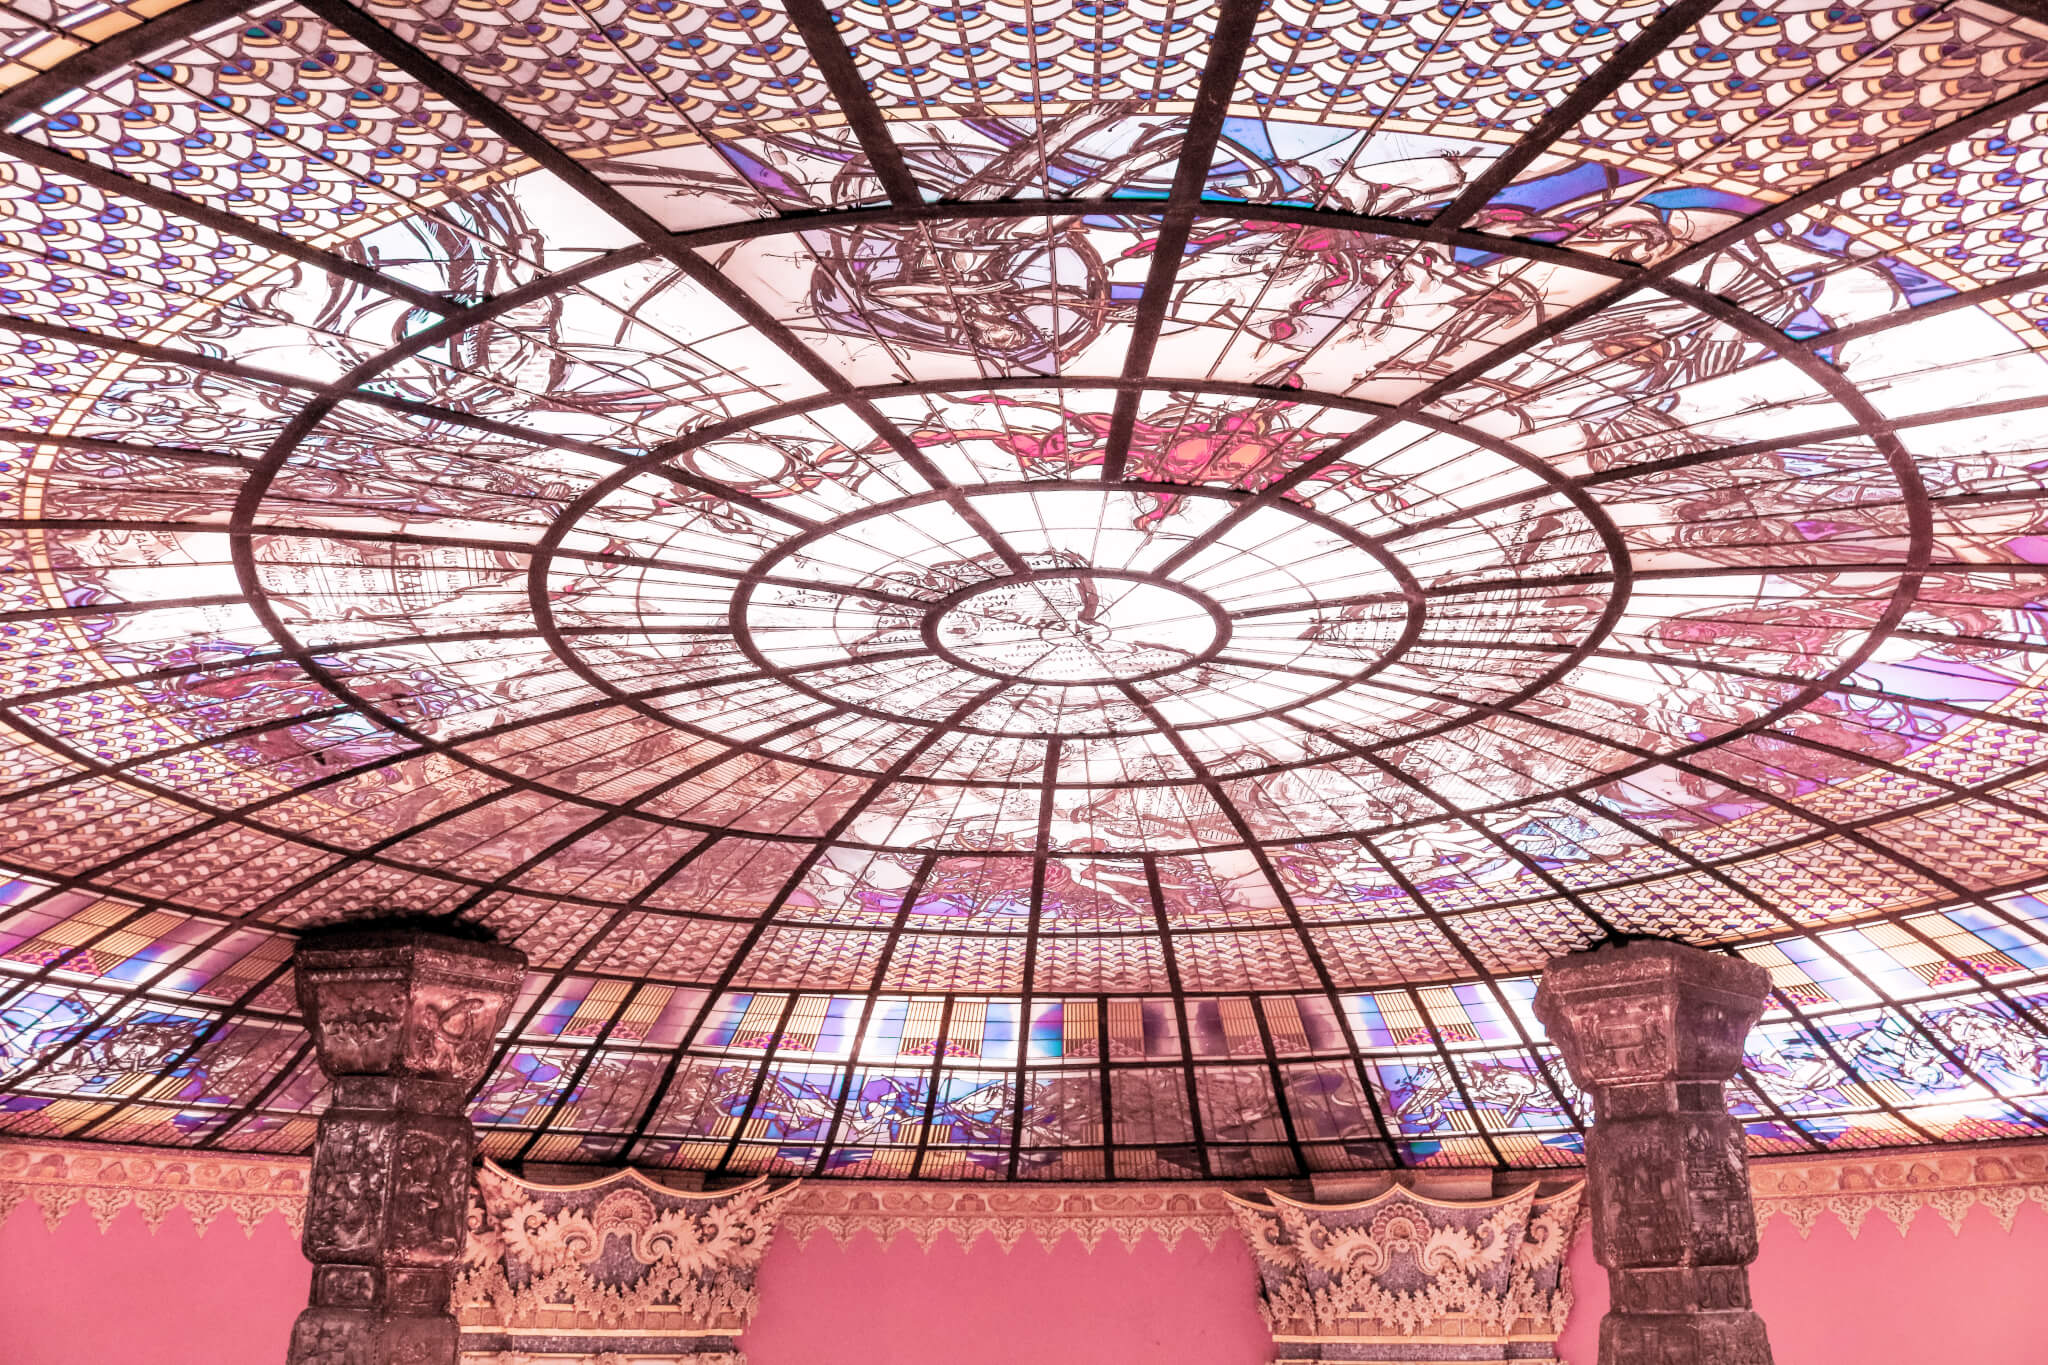 Stained Glass Ceiling Erawan Museum